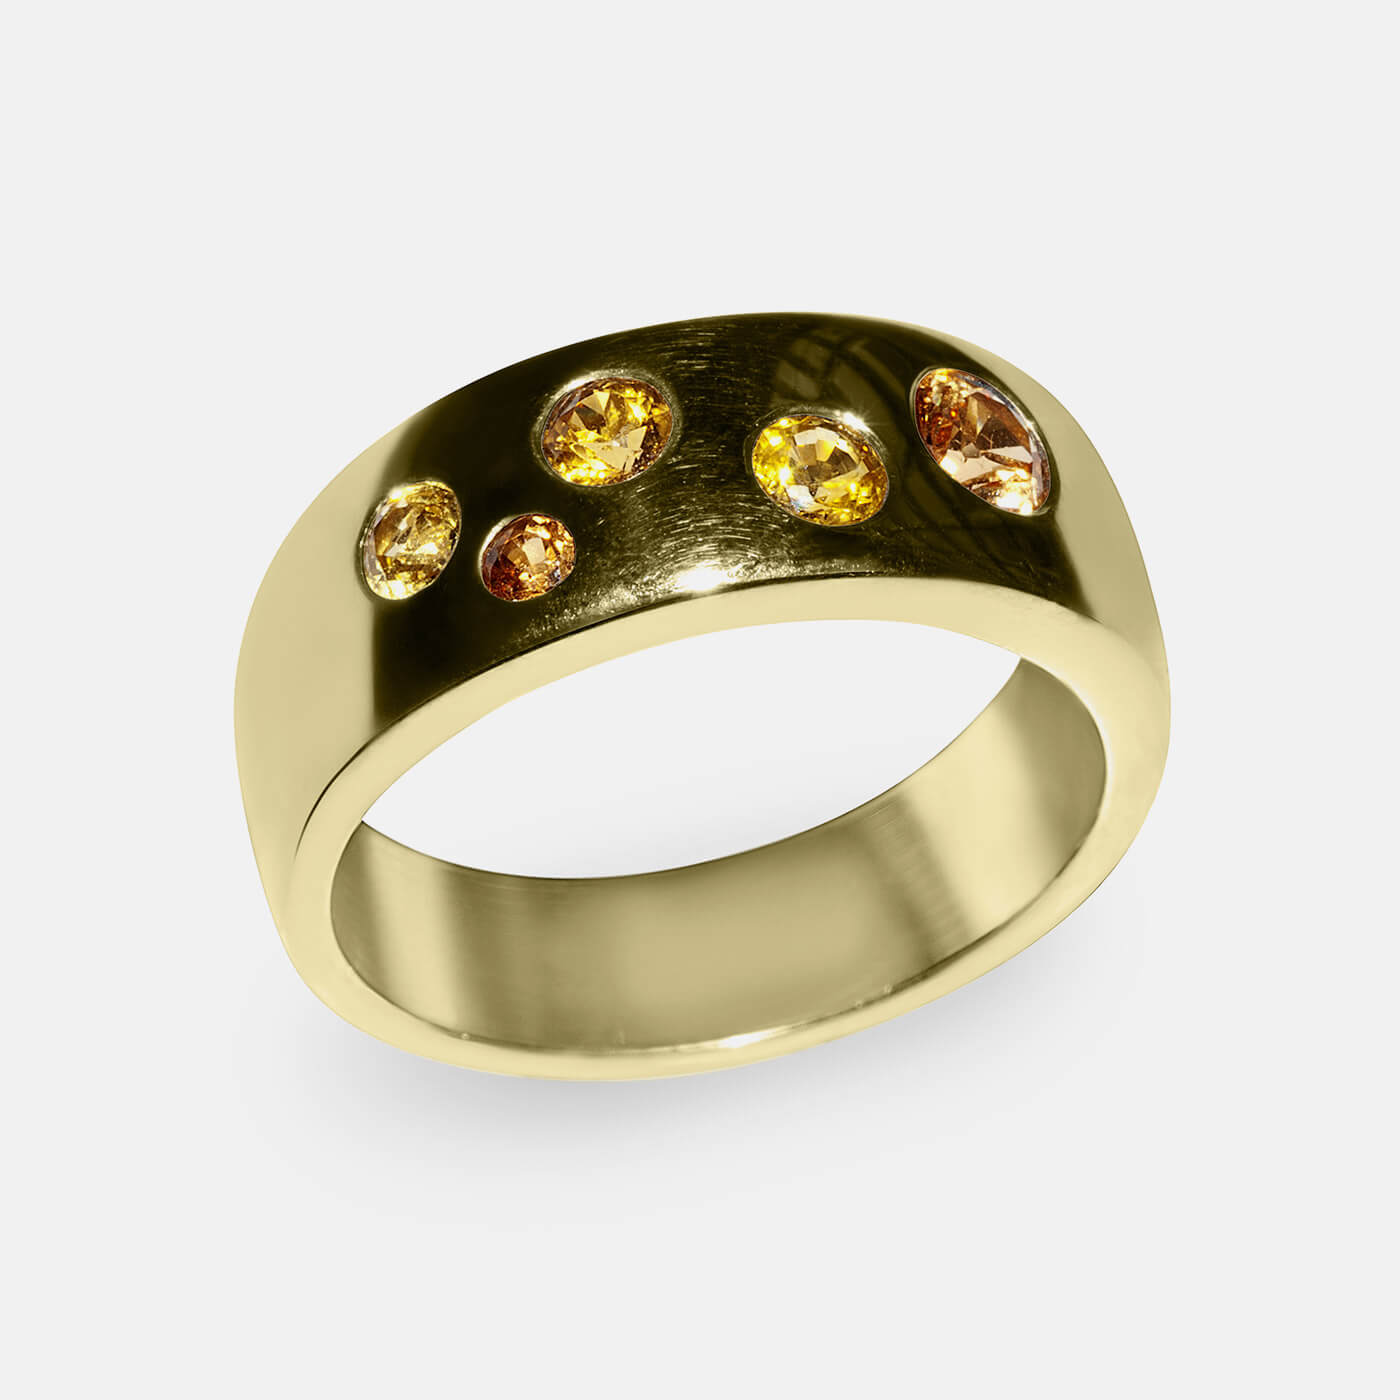 Golden Hues Wedding Ring